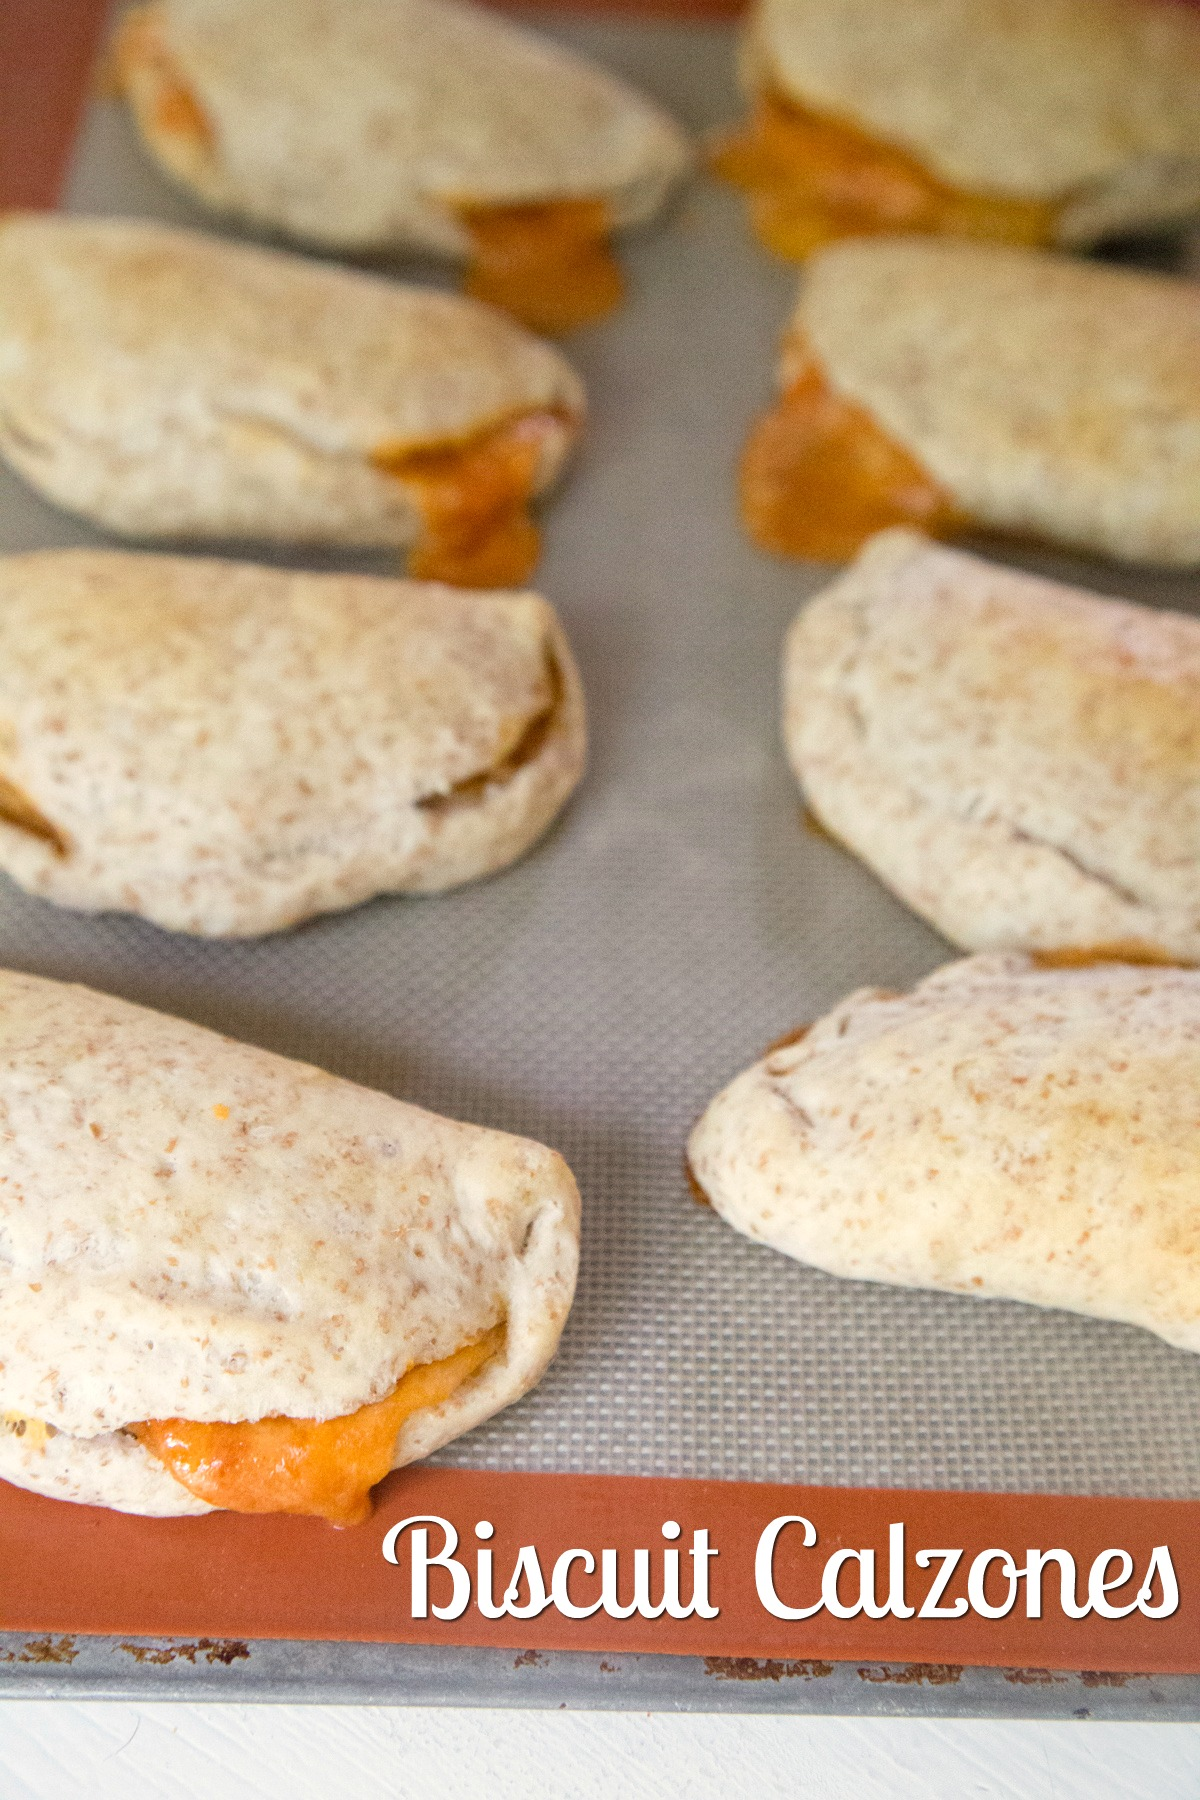 Biscuit Calzones Recipe from 5DollarDinners.com